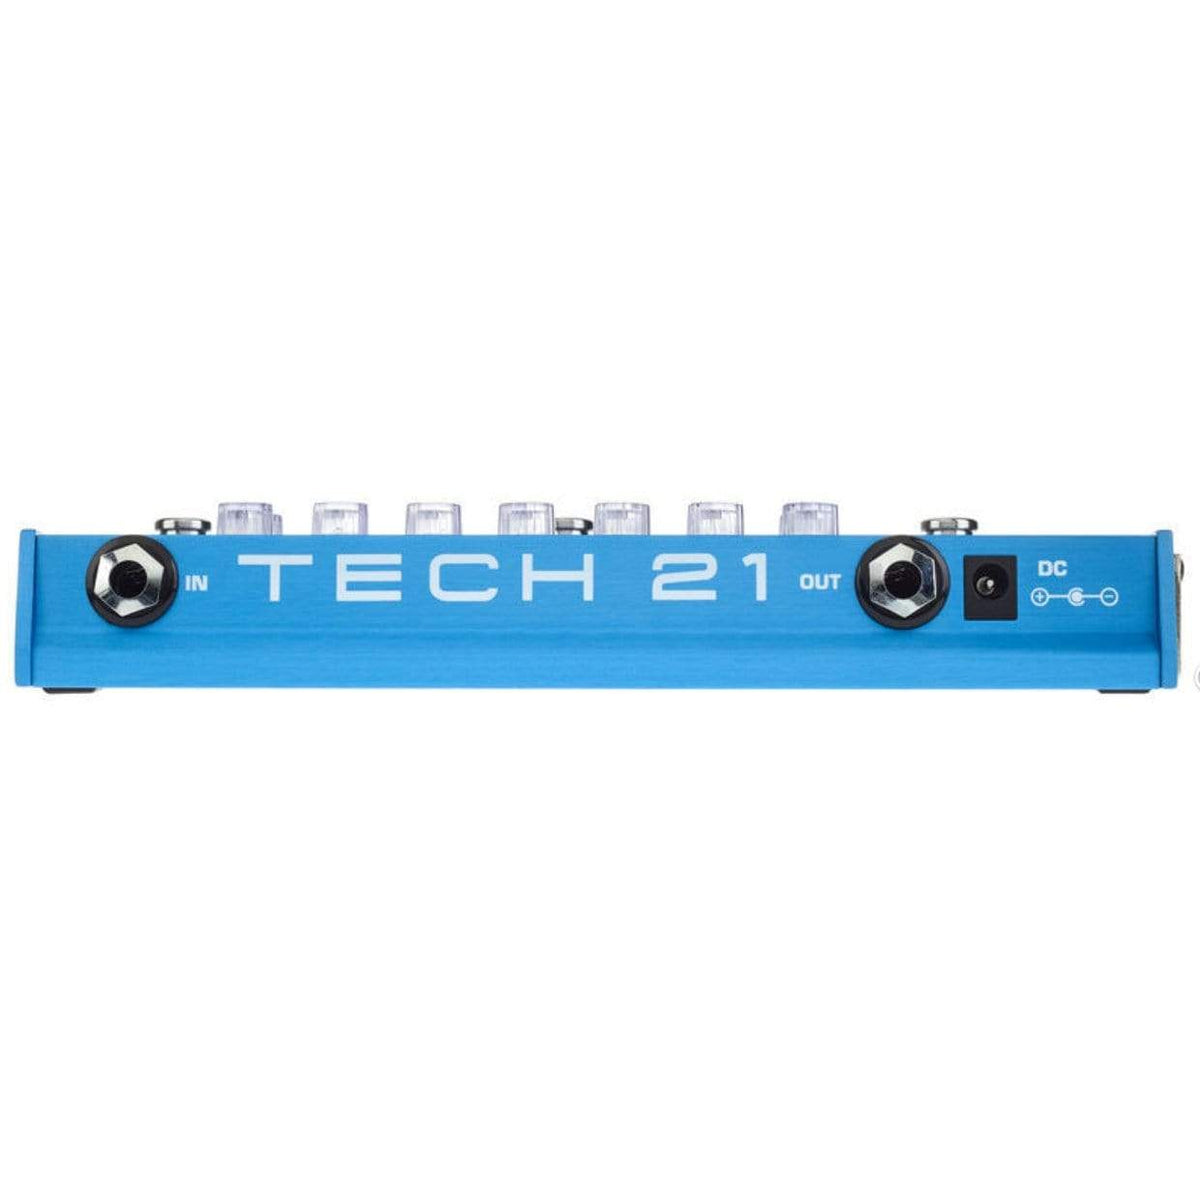 Tech 21  SH1  Steve Harris Signature SansAmp Pedal